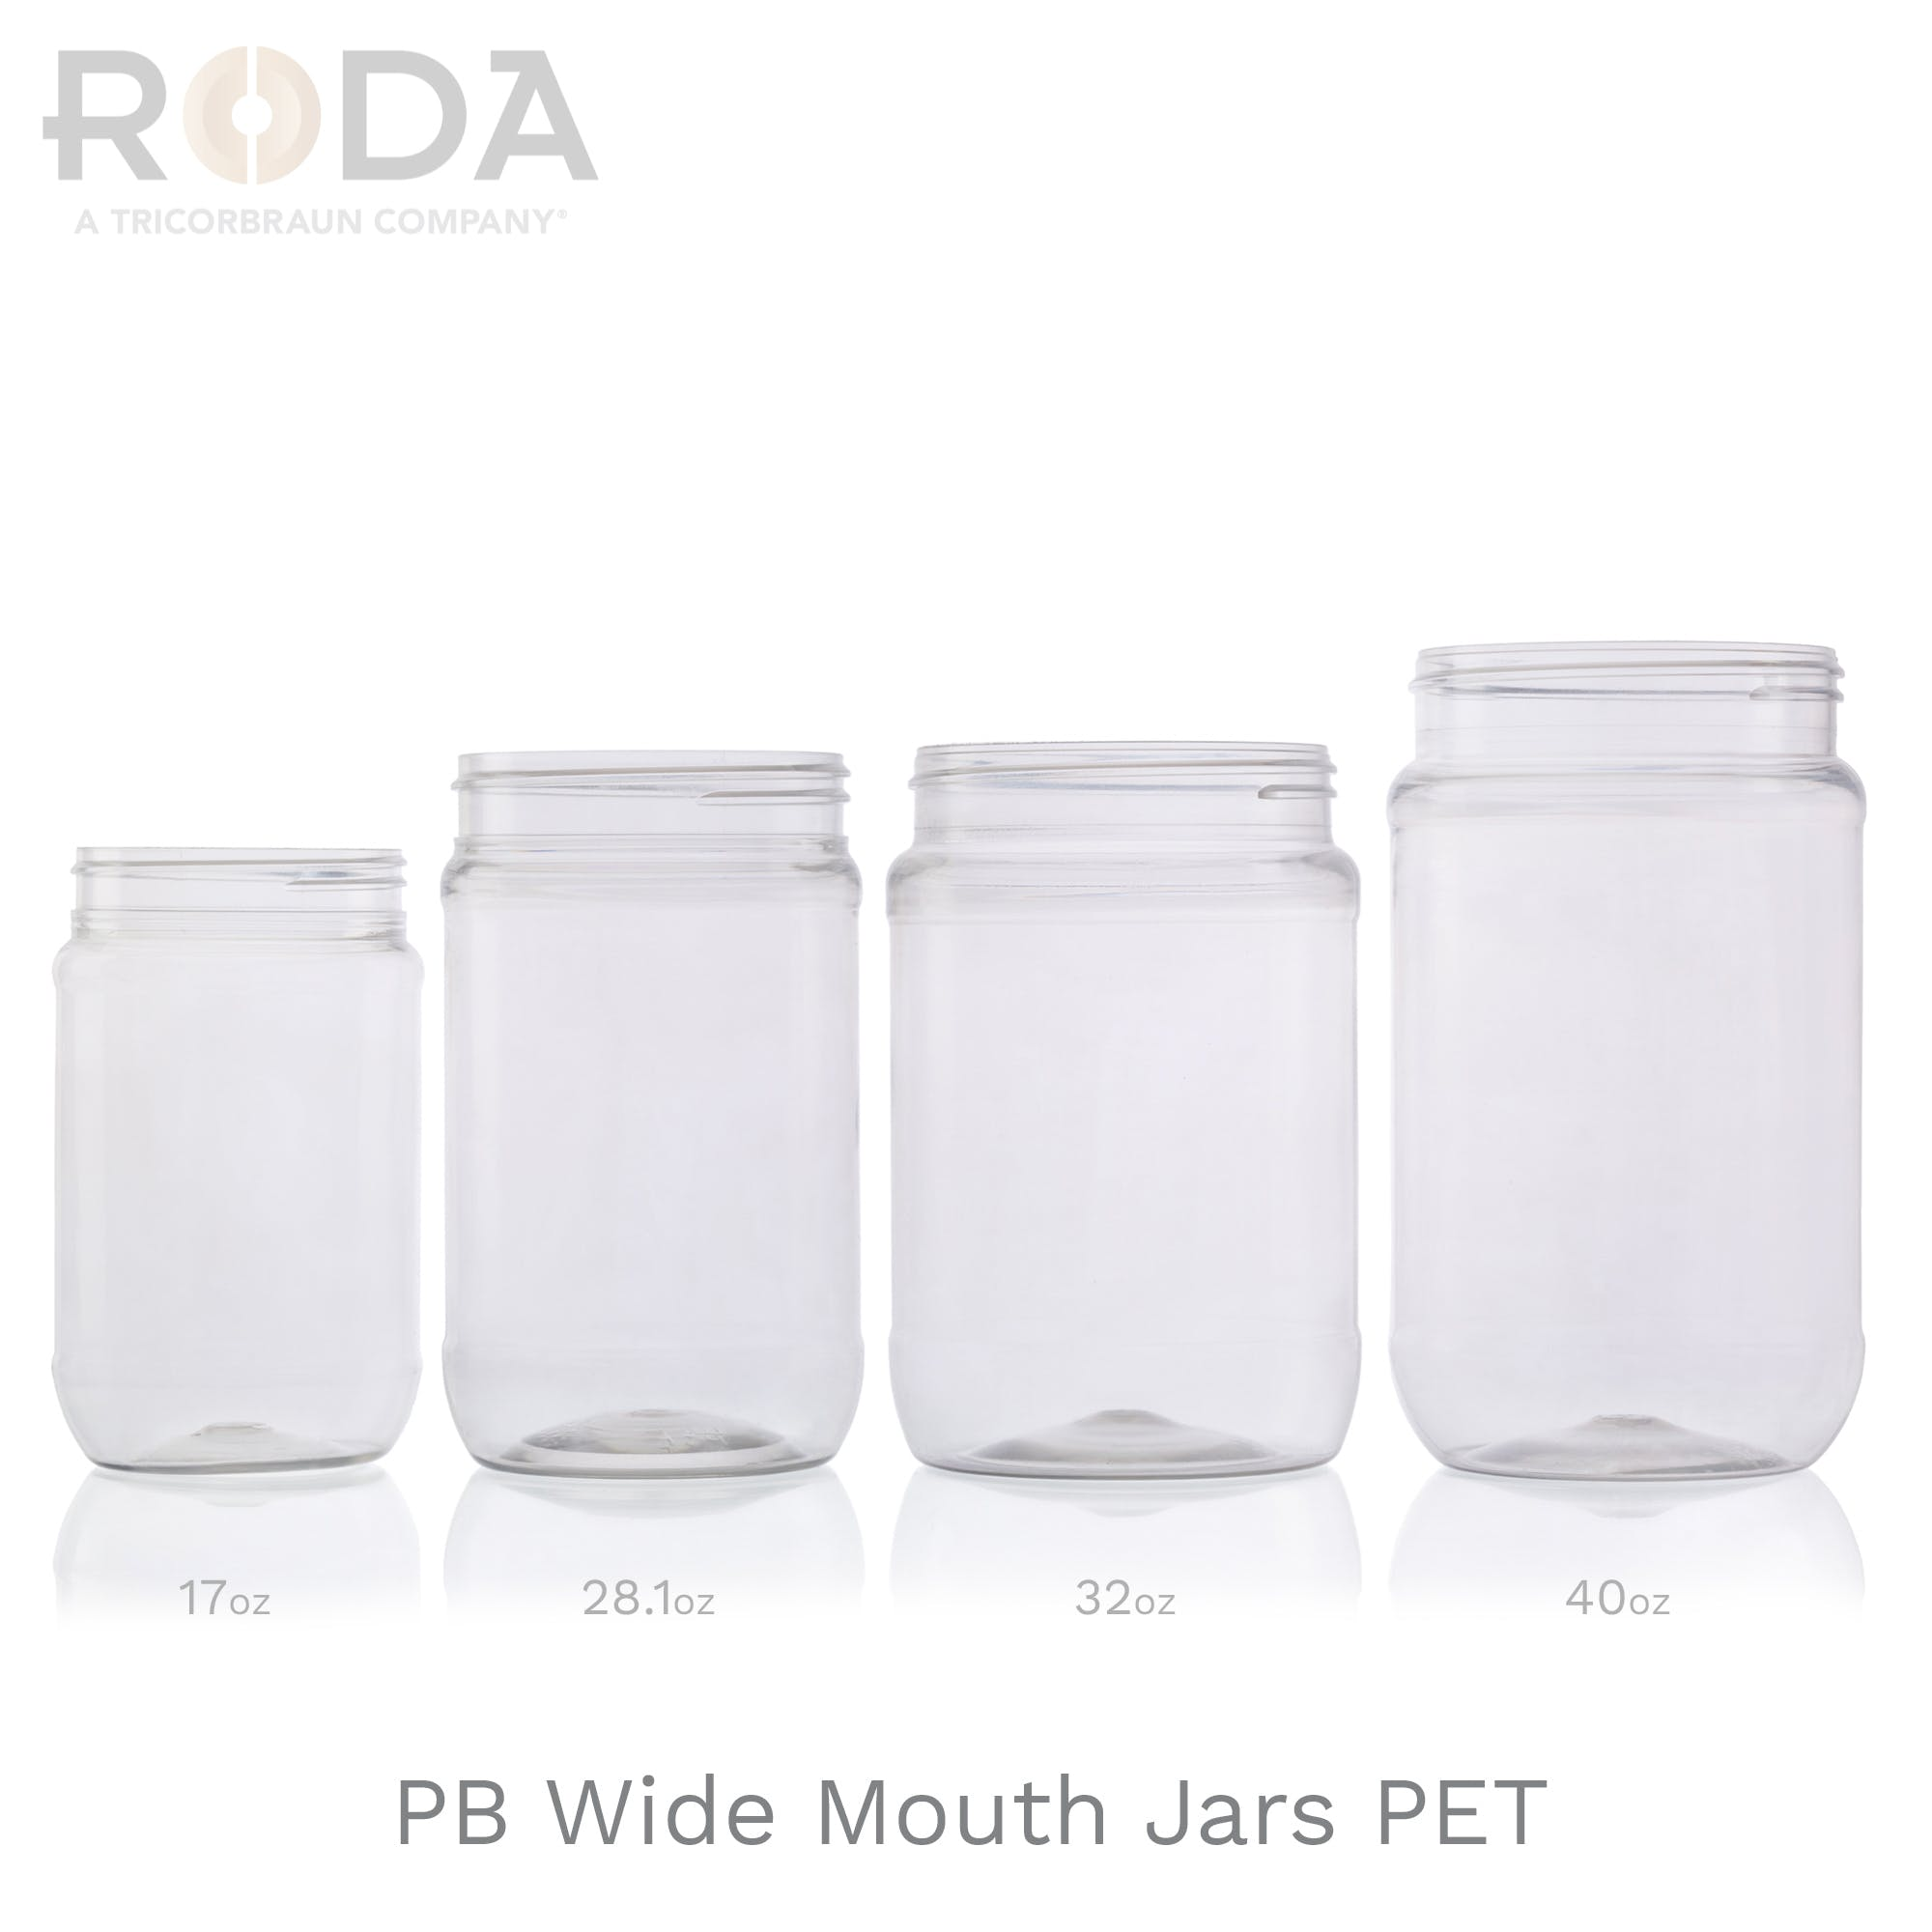 PB Wide Mouth Jars PET